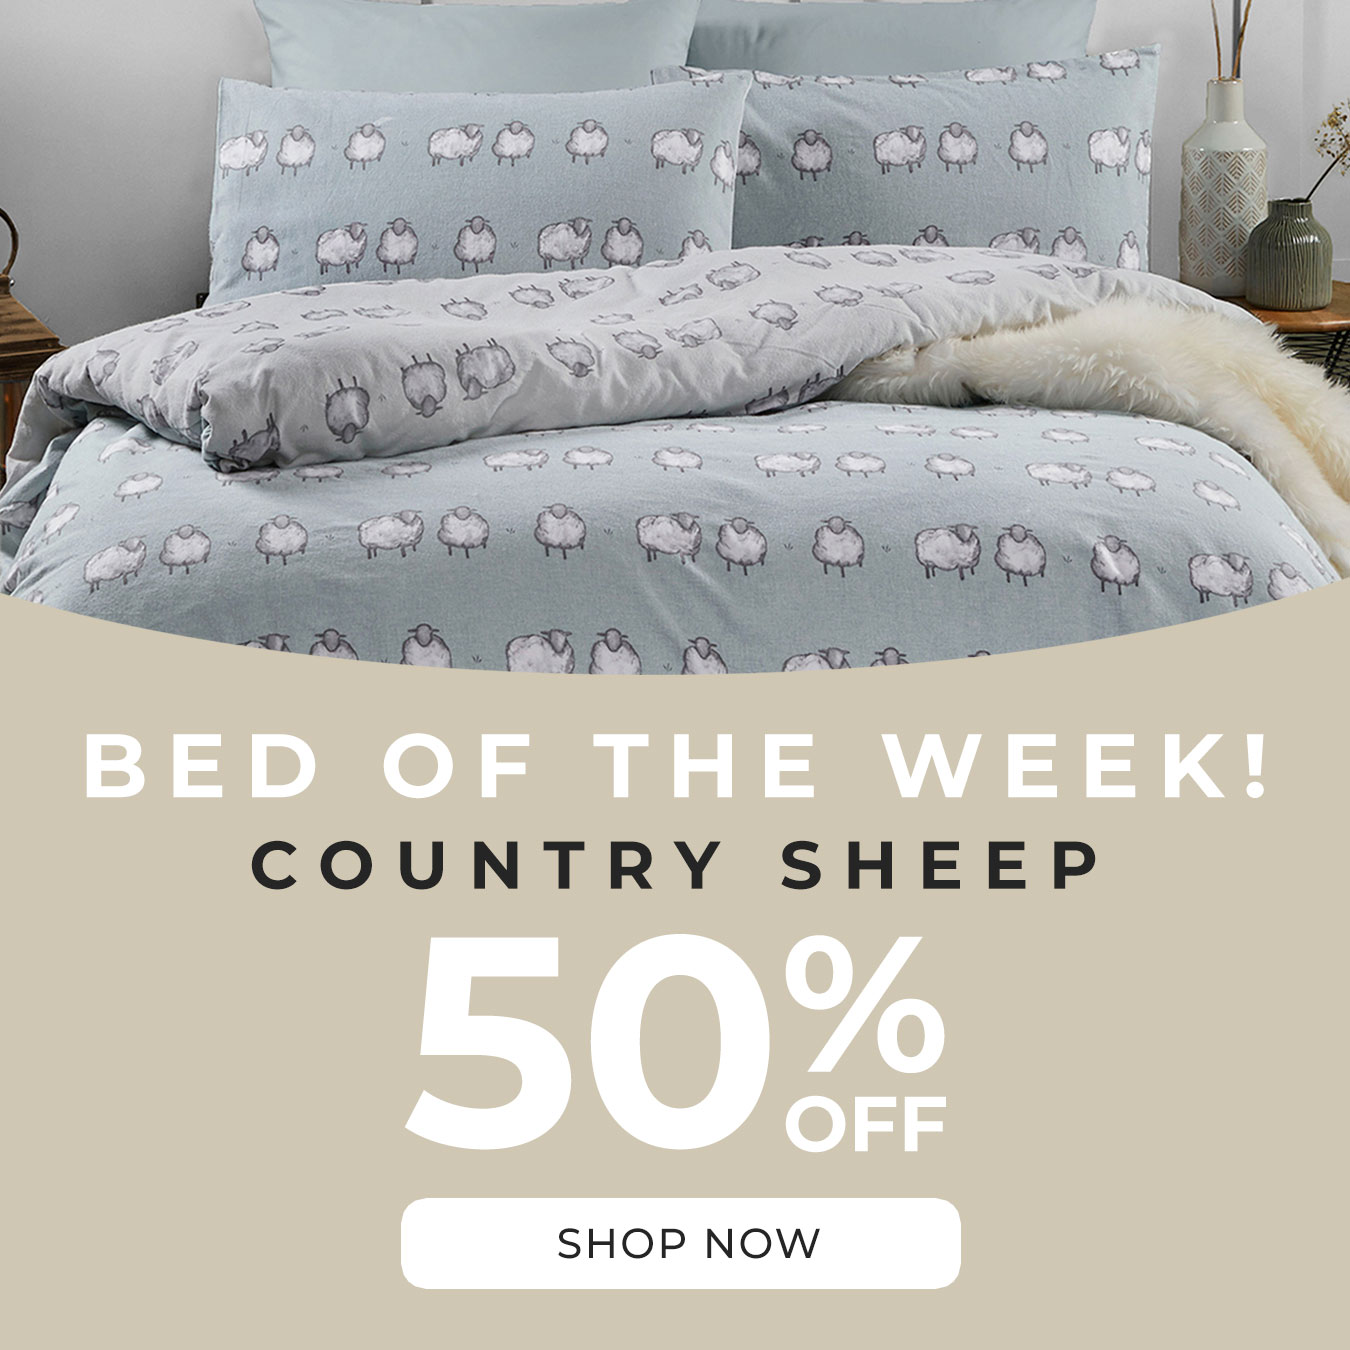 Bed of the week